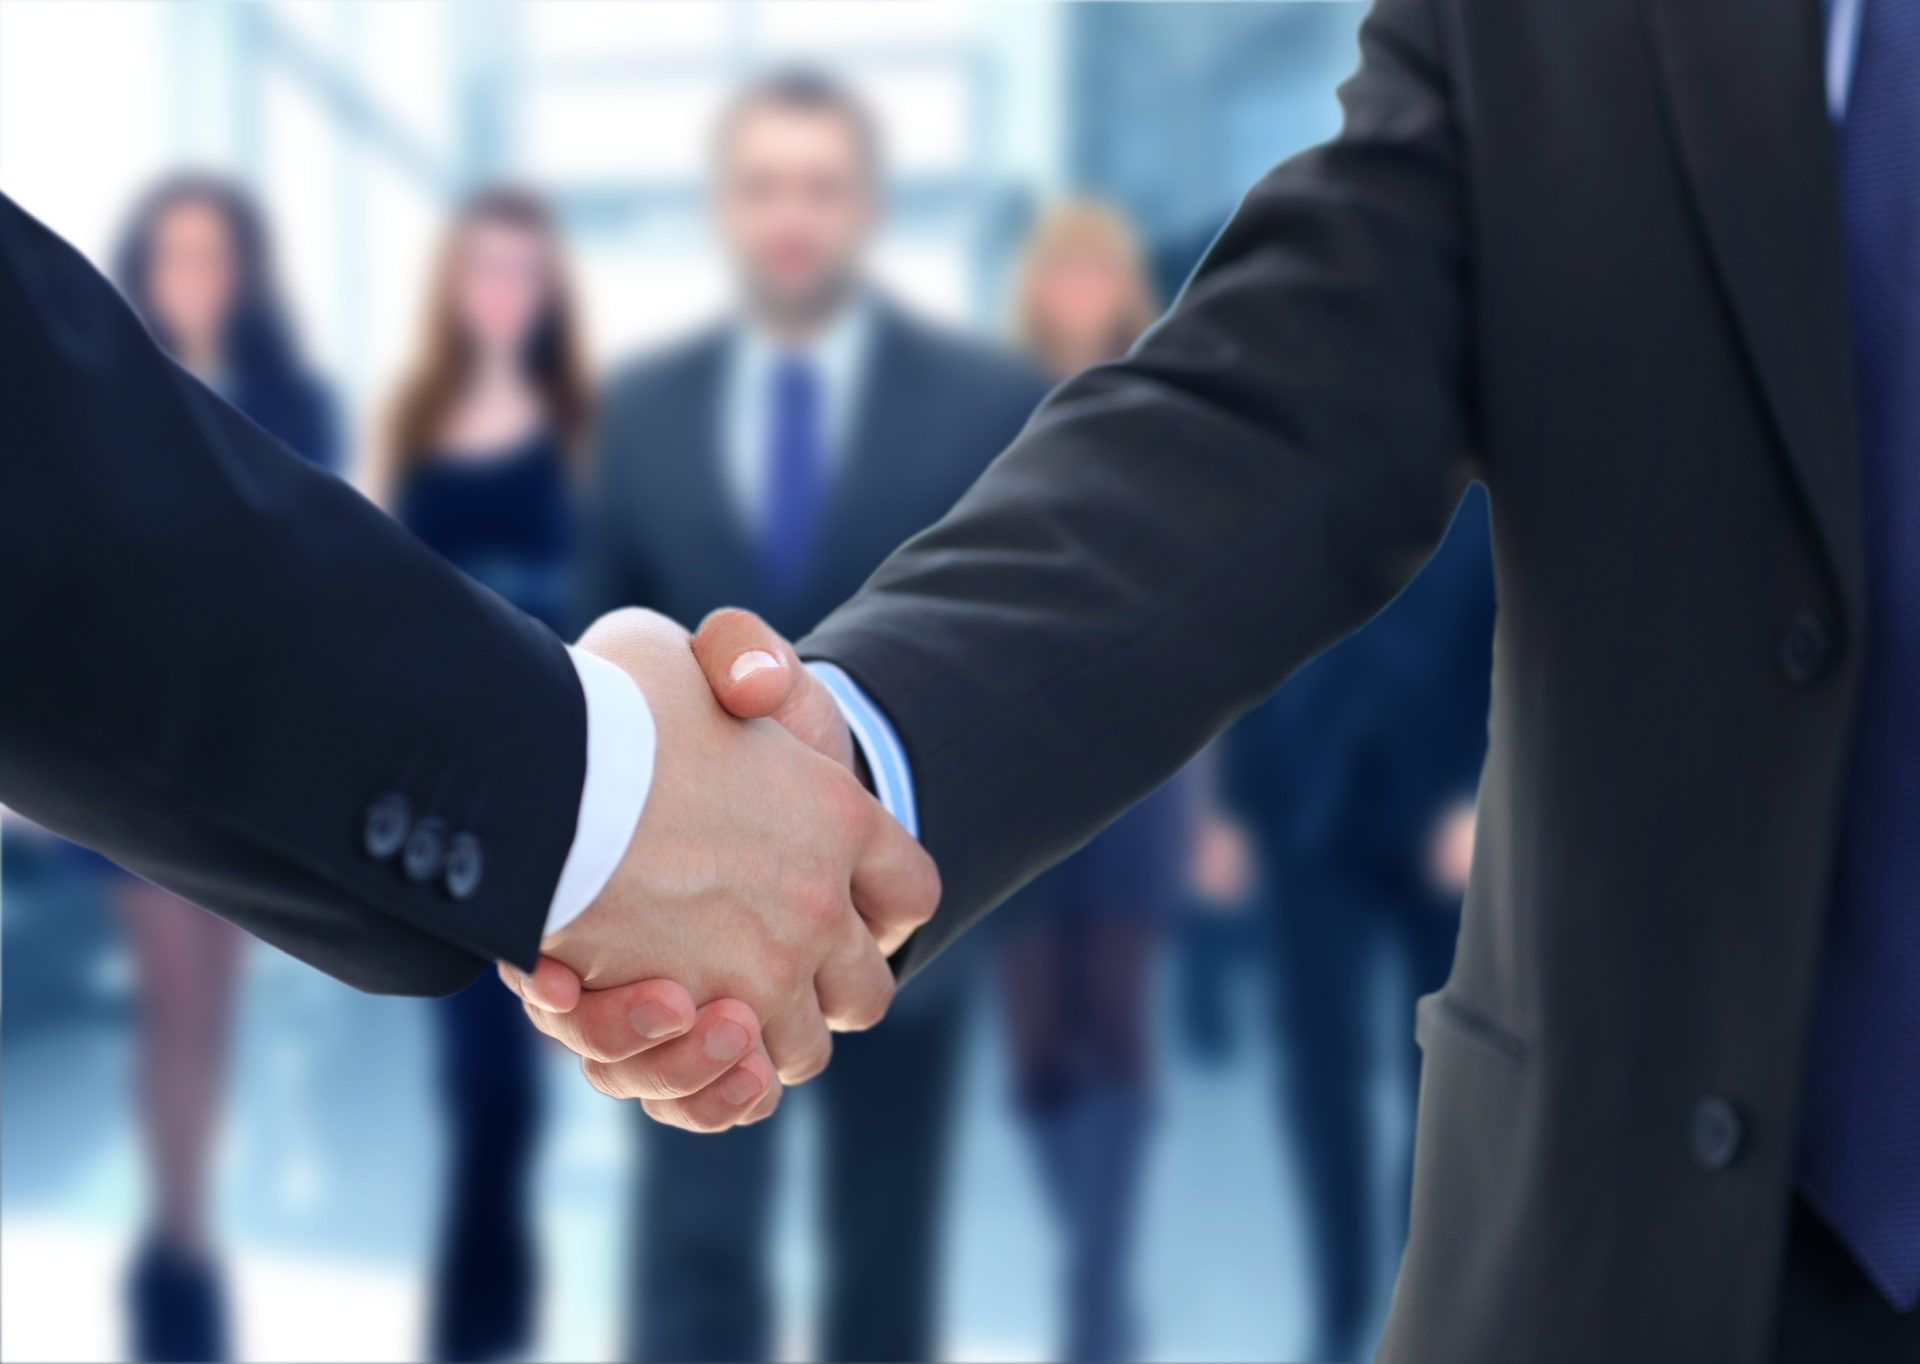 Representative of a Canadian Sales Organization closing a deal with a handshake